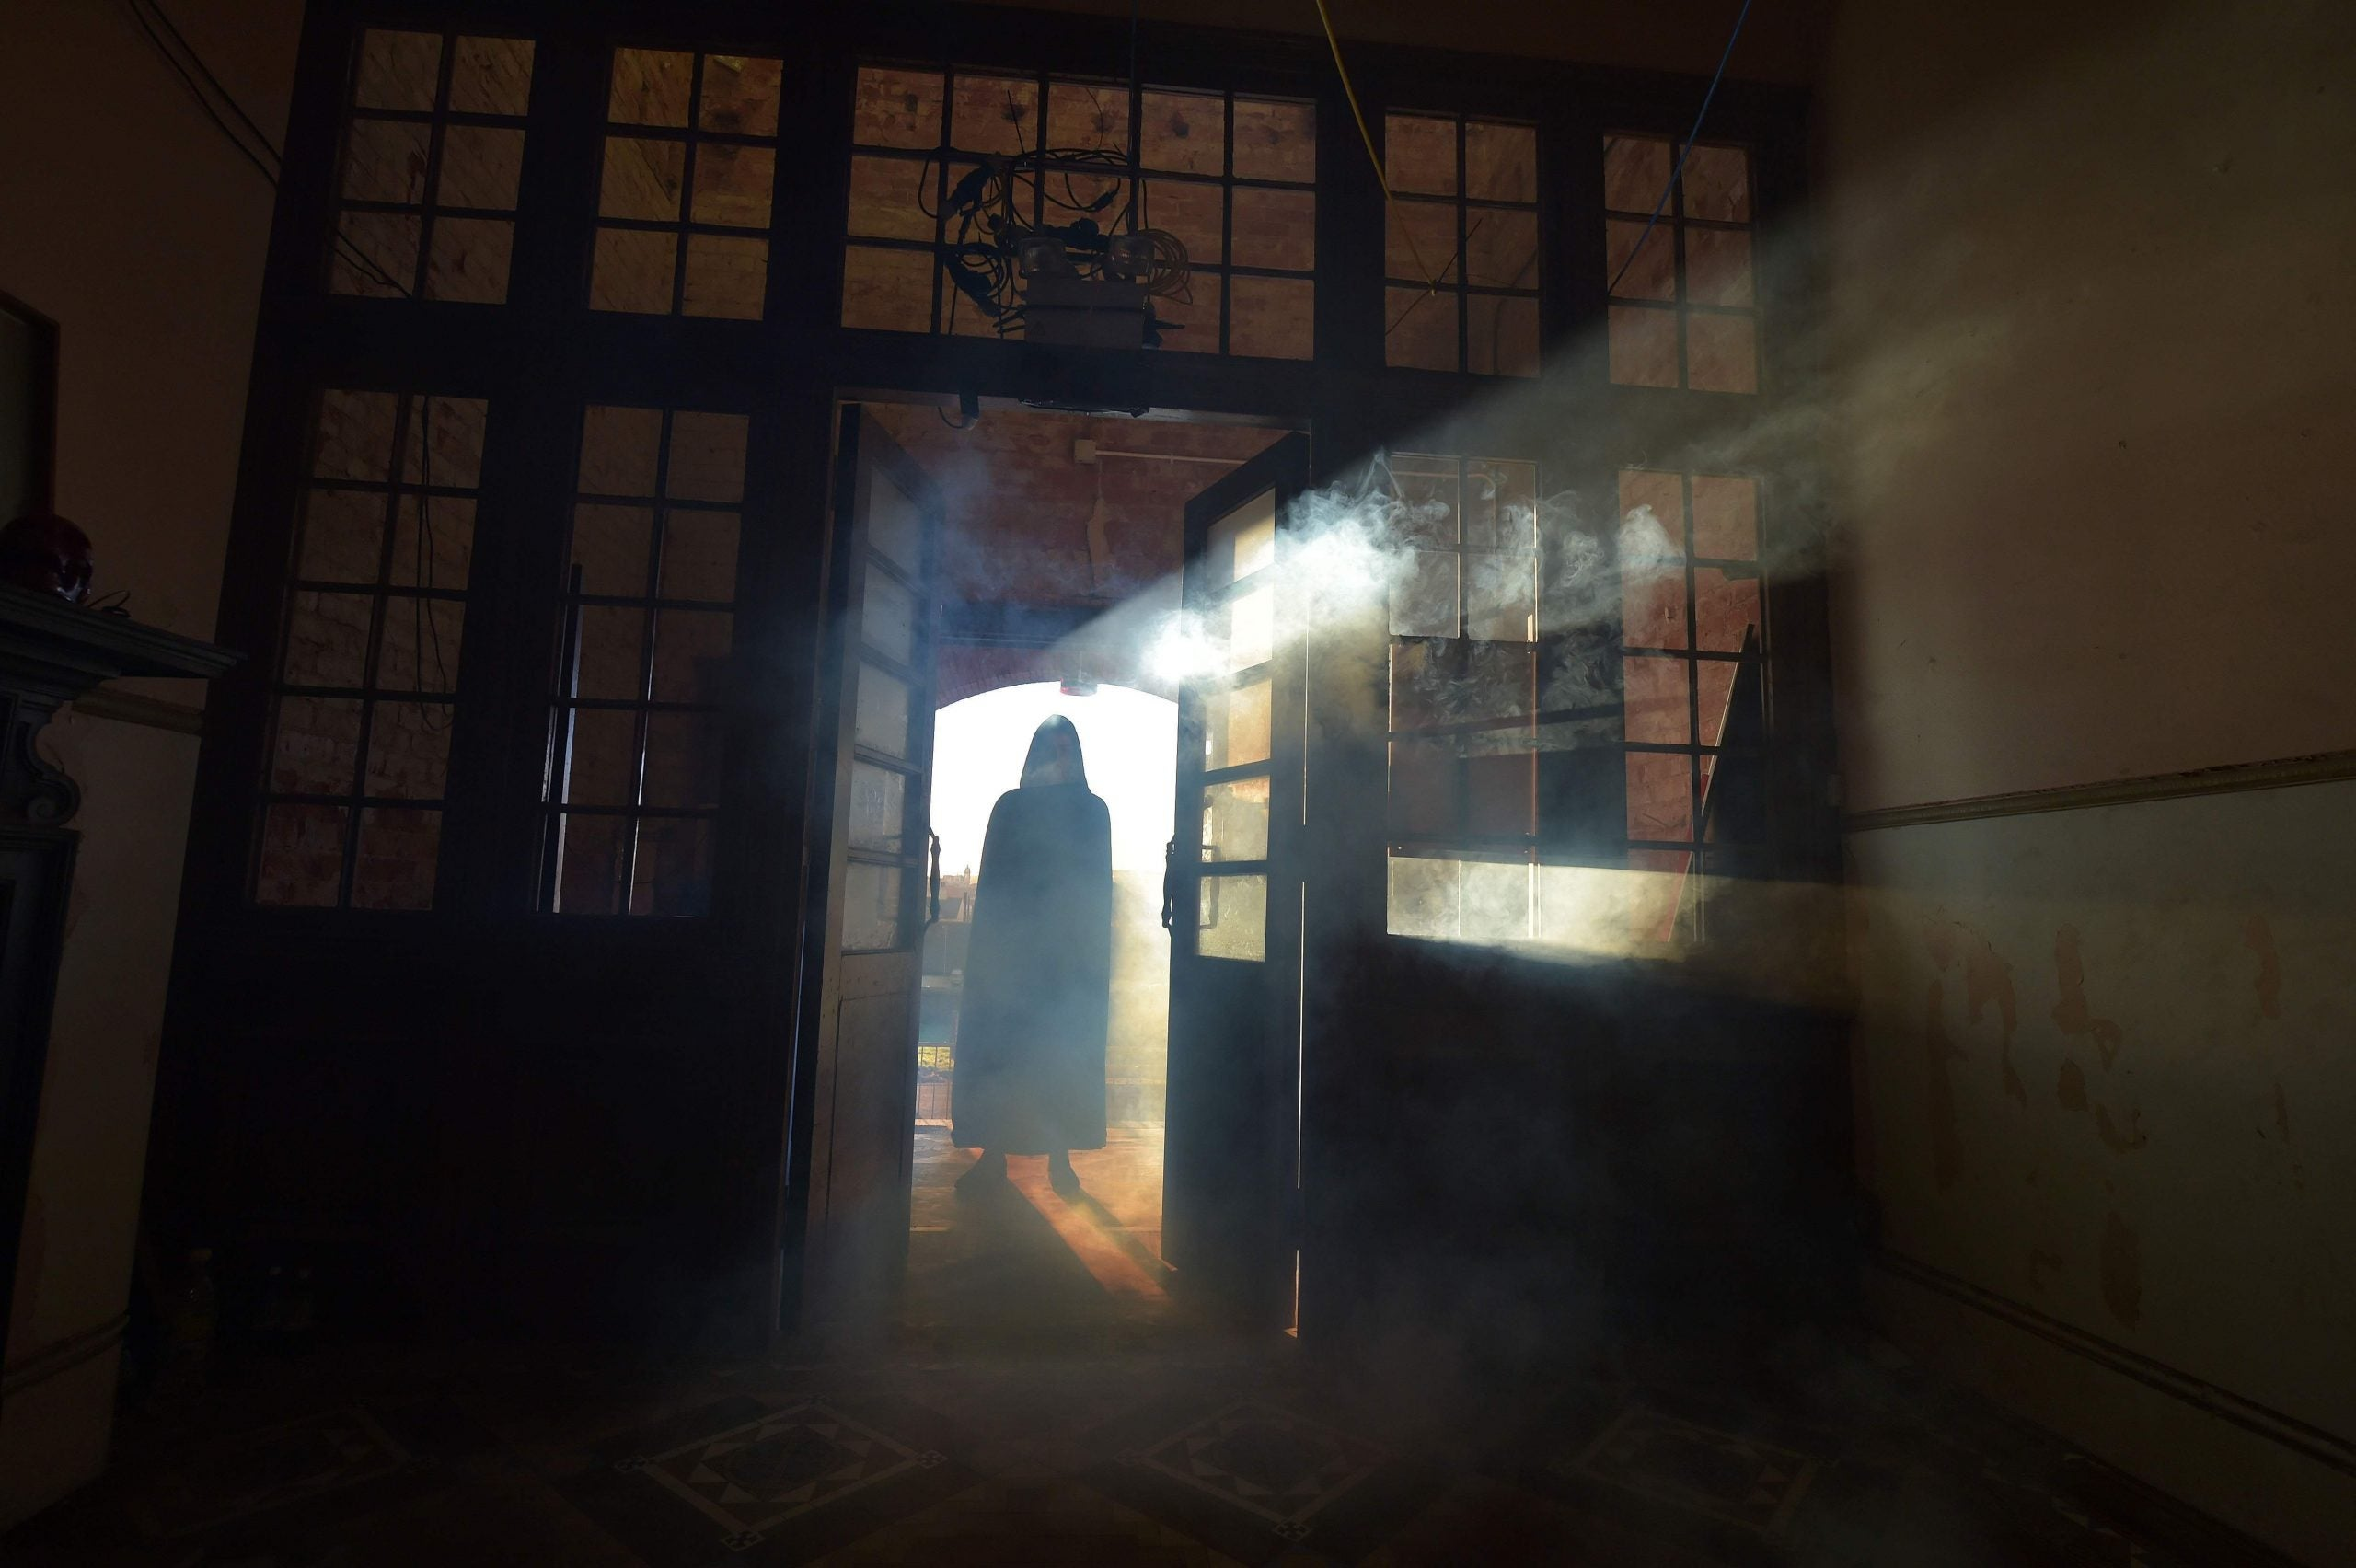 Algernon Blackwood's Ghost Stories and why horror is better in the heat